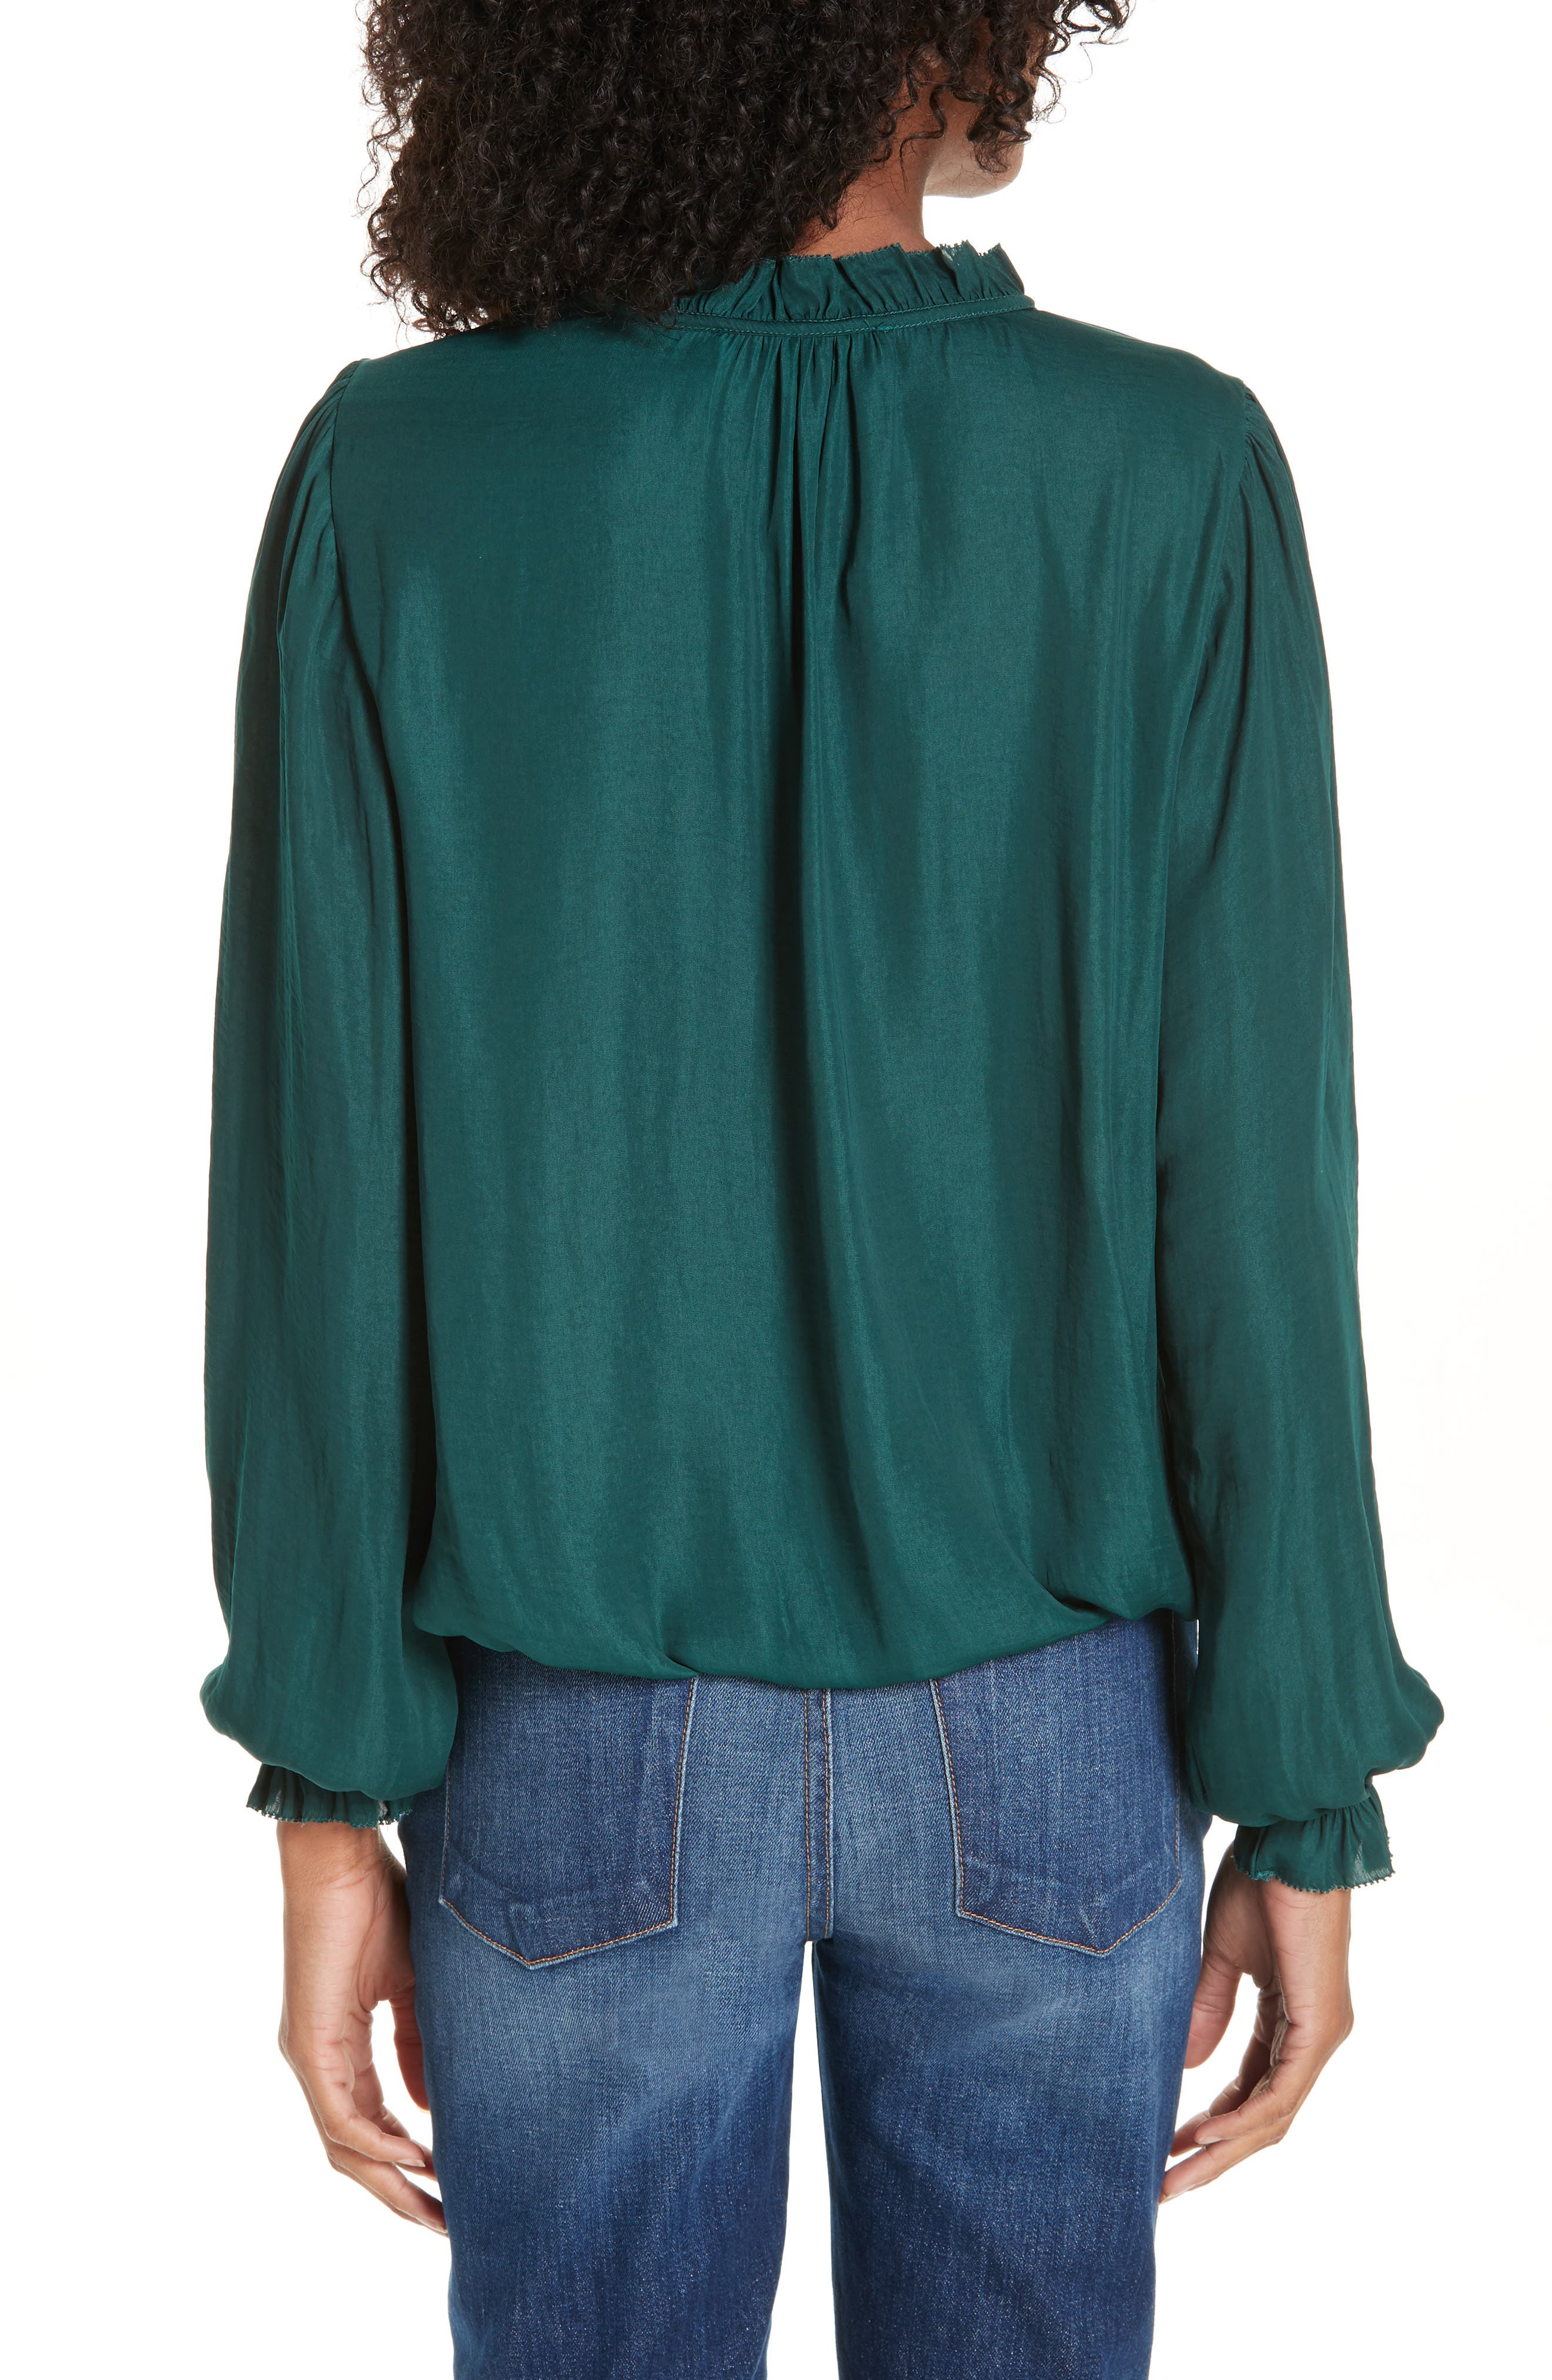 Cinched Hem Blouse,                             Alternate thumbnail 2, color,                             305